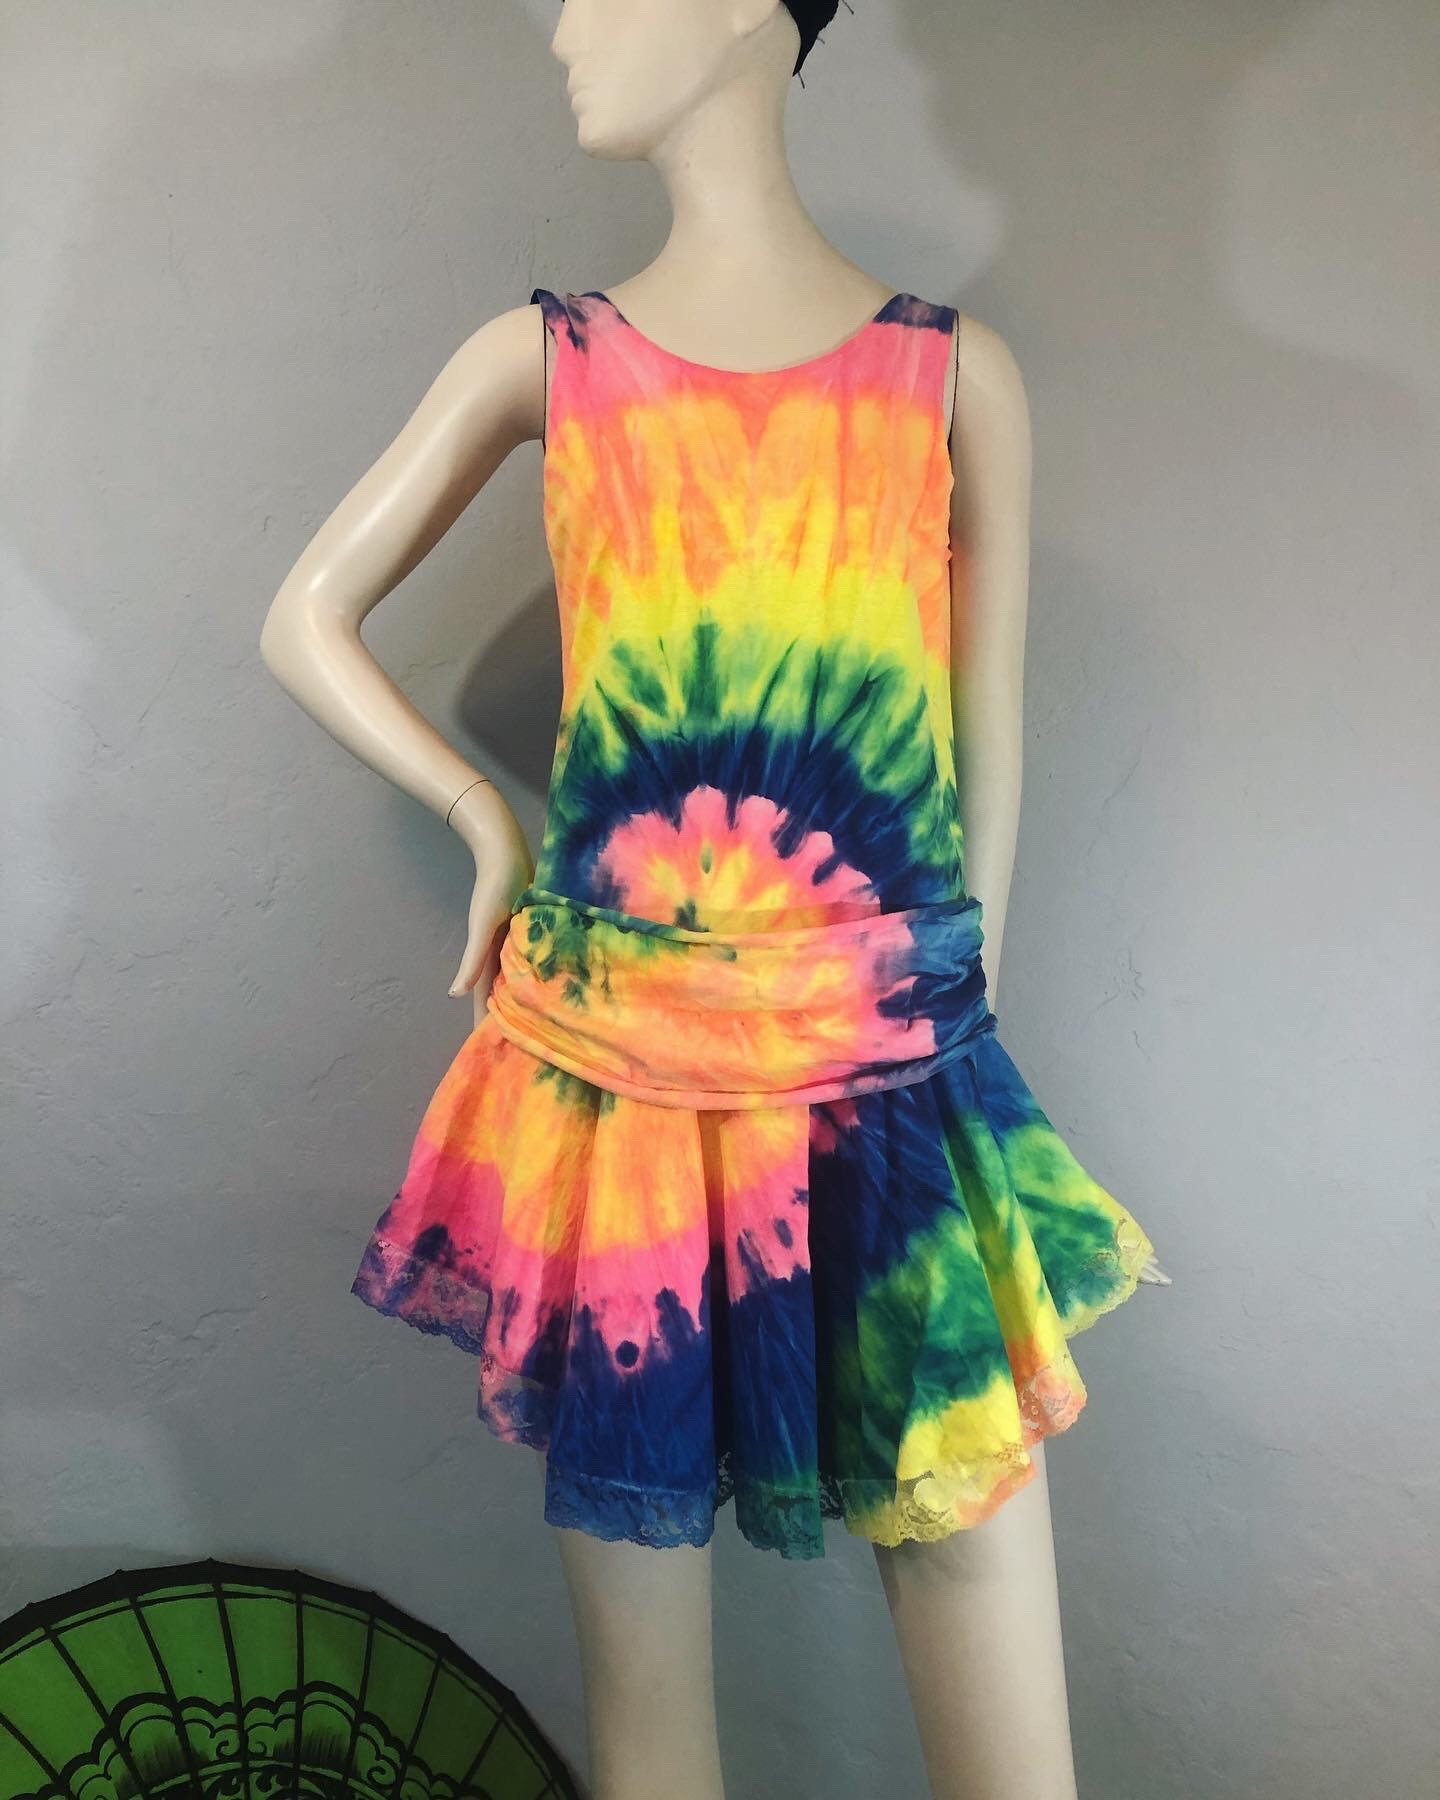 80s Dresses | Casual to Party Dresses Vintage 1980s Neon Tie Dye Drop Waist Tank Mini Dress With Lace Hem By Esy $0.00 AT vintagedancer.com